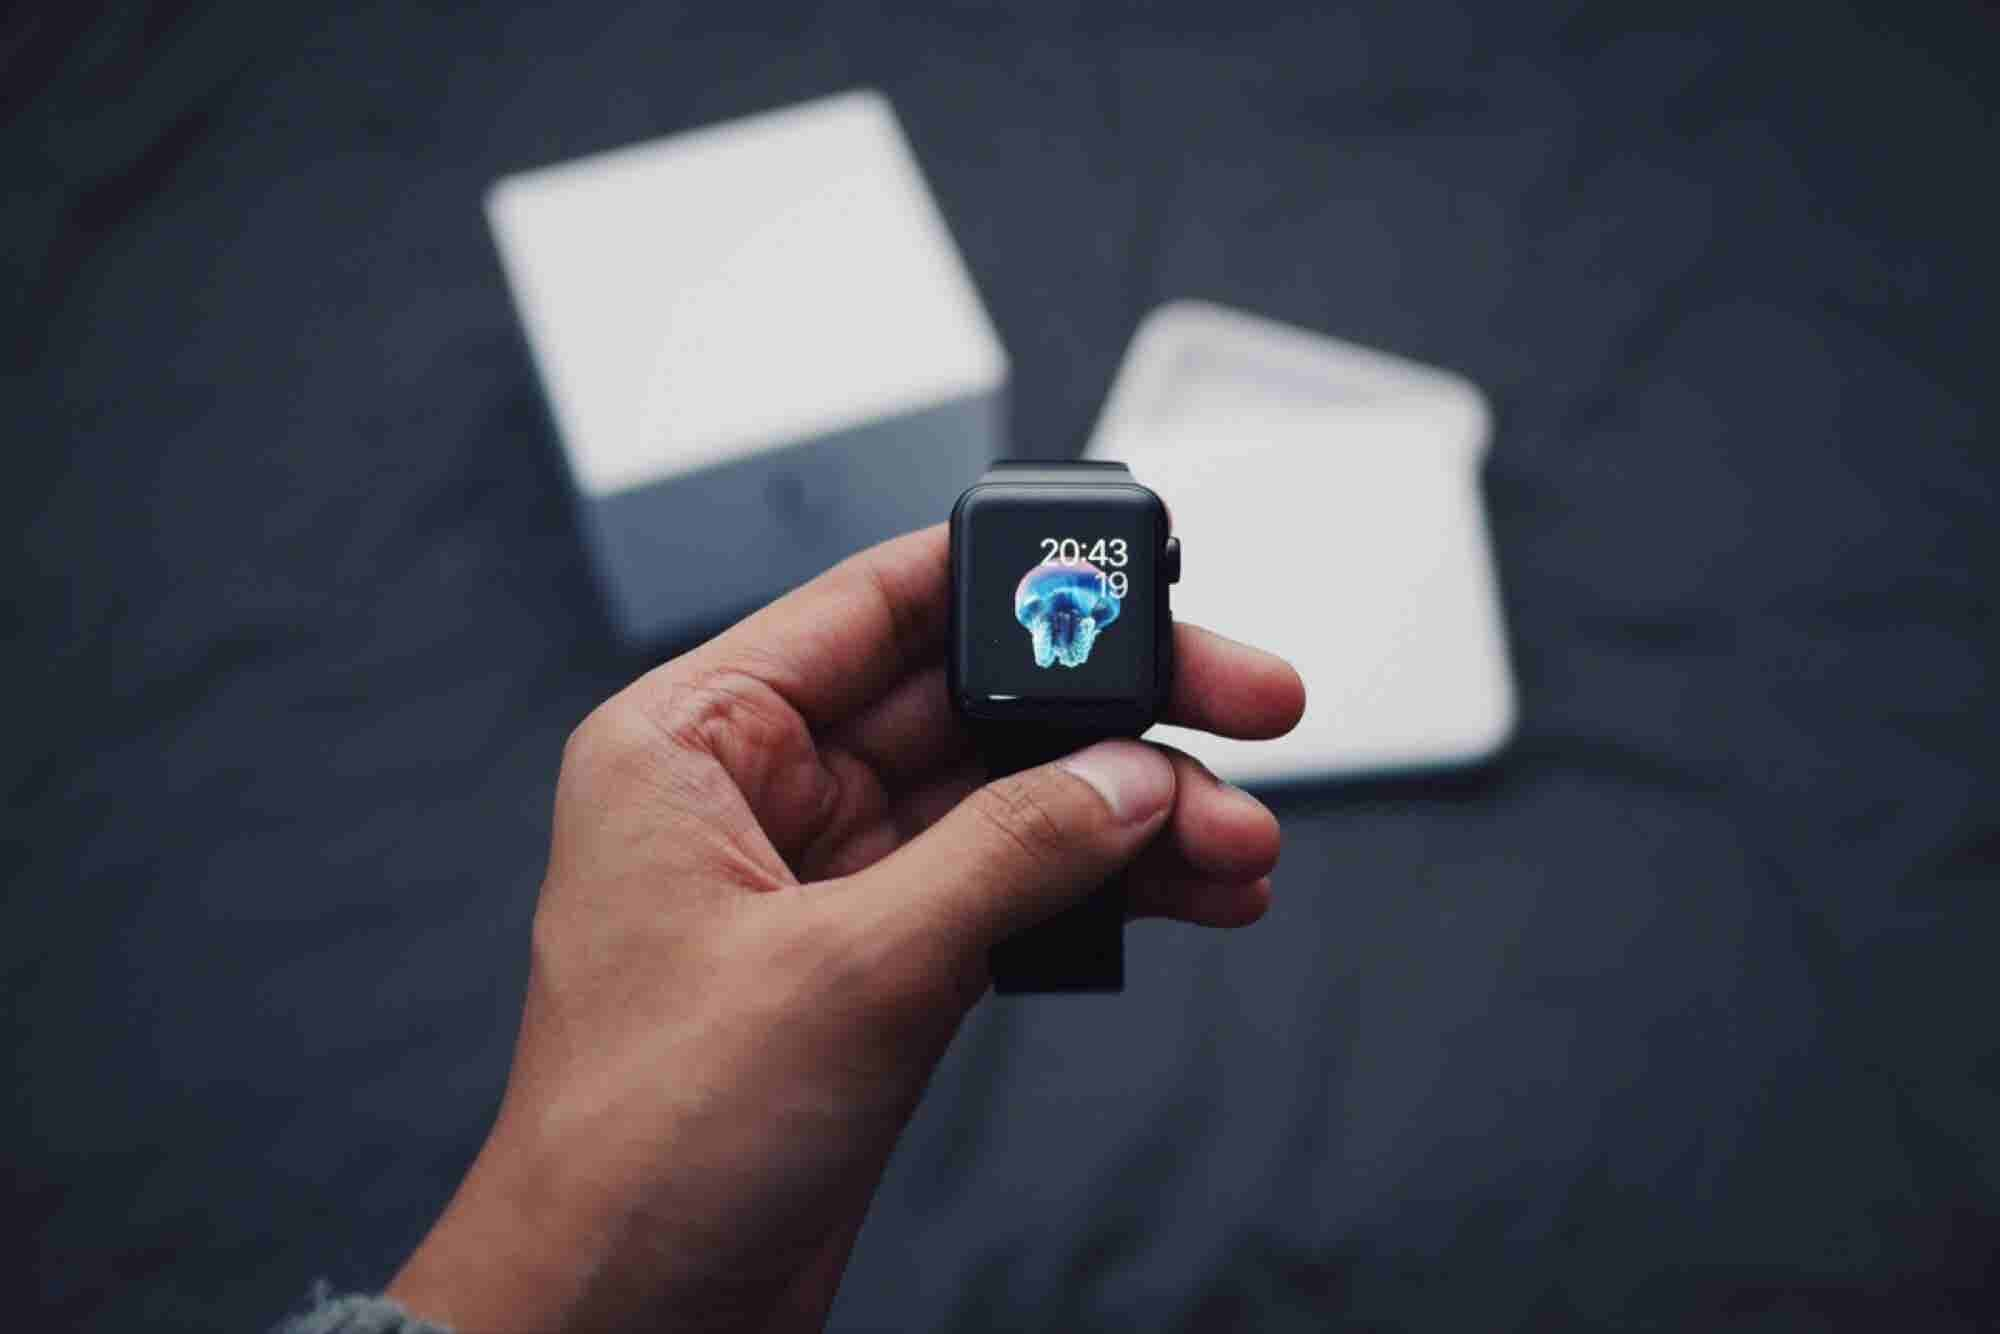 10 Gadgets That Make Great Gifts for Entrepreneurs